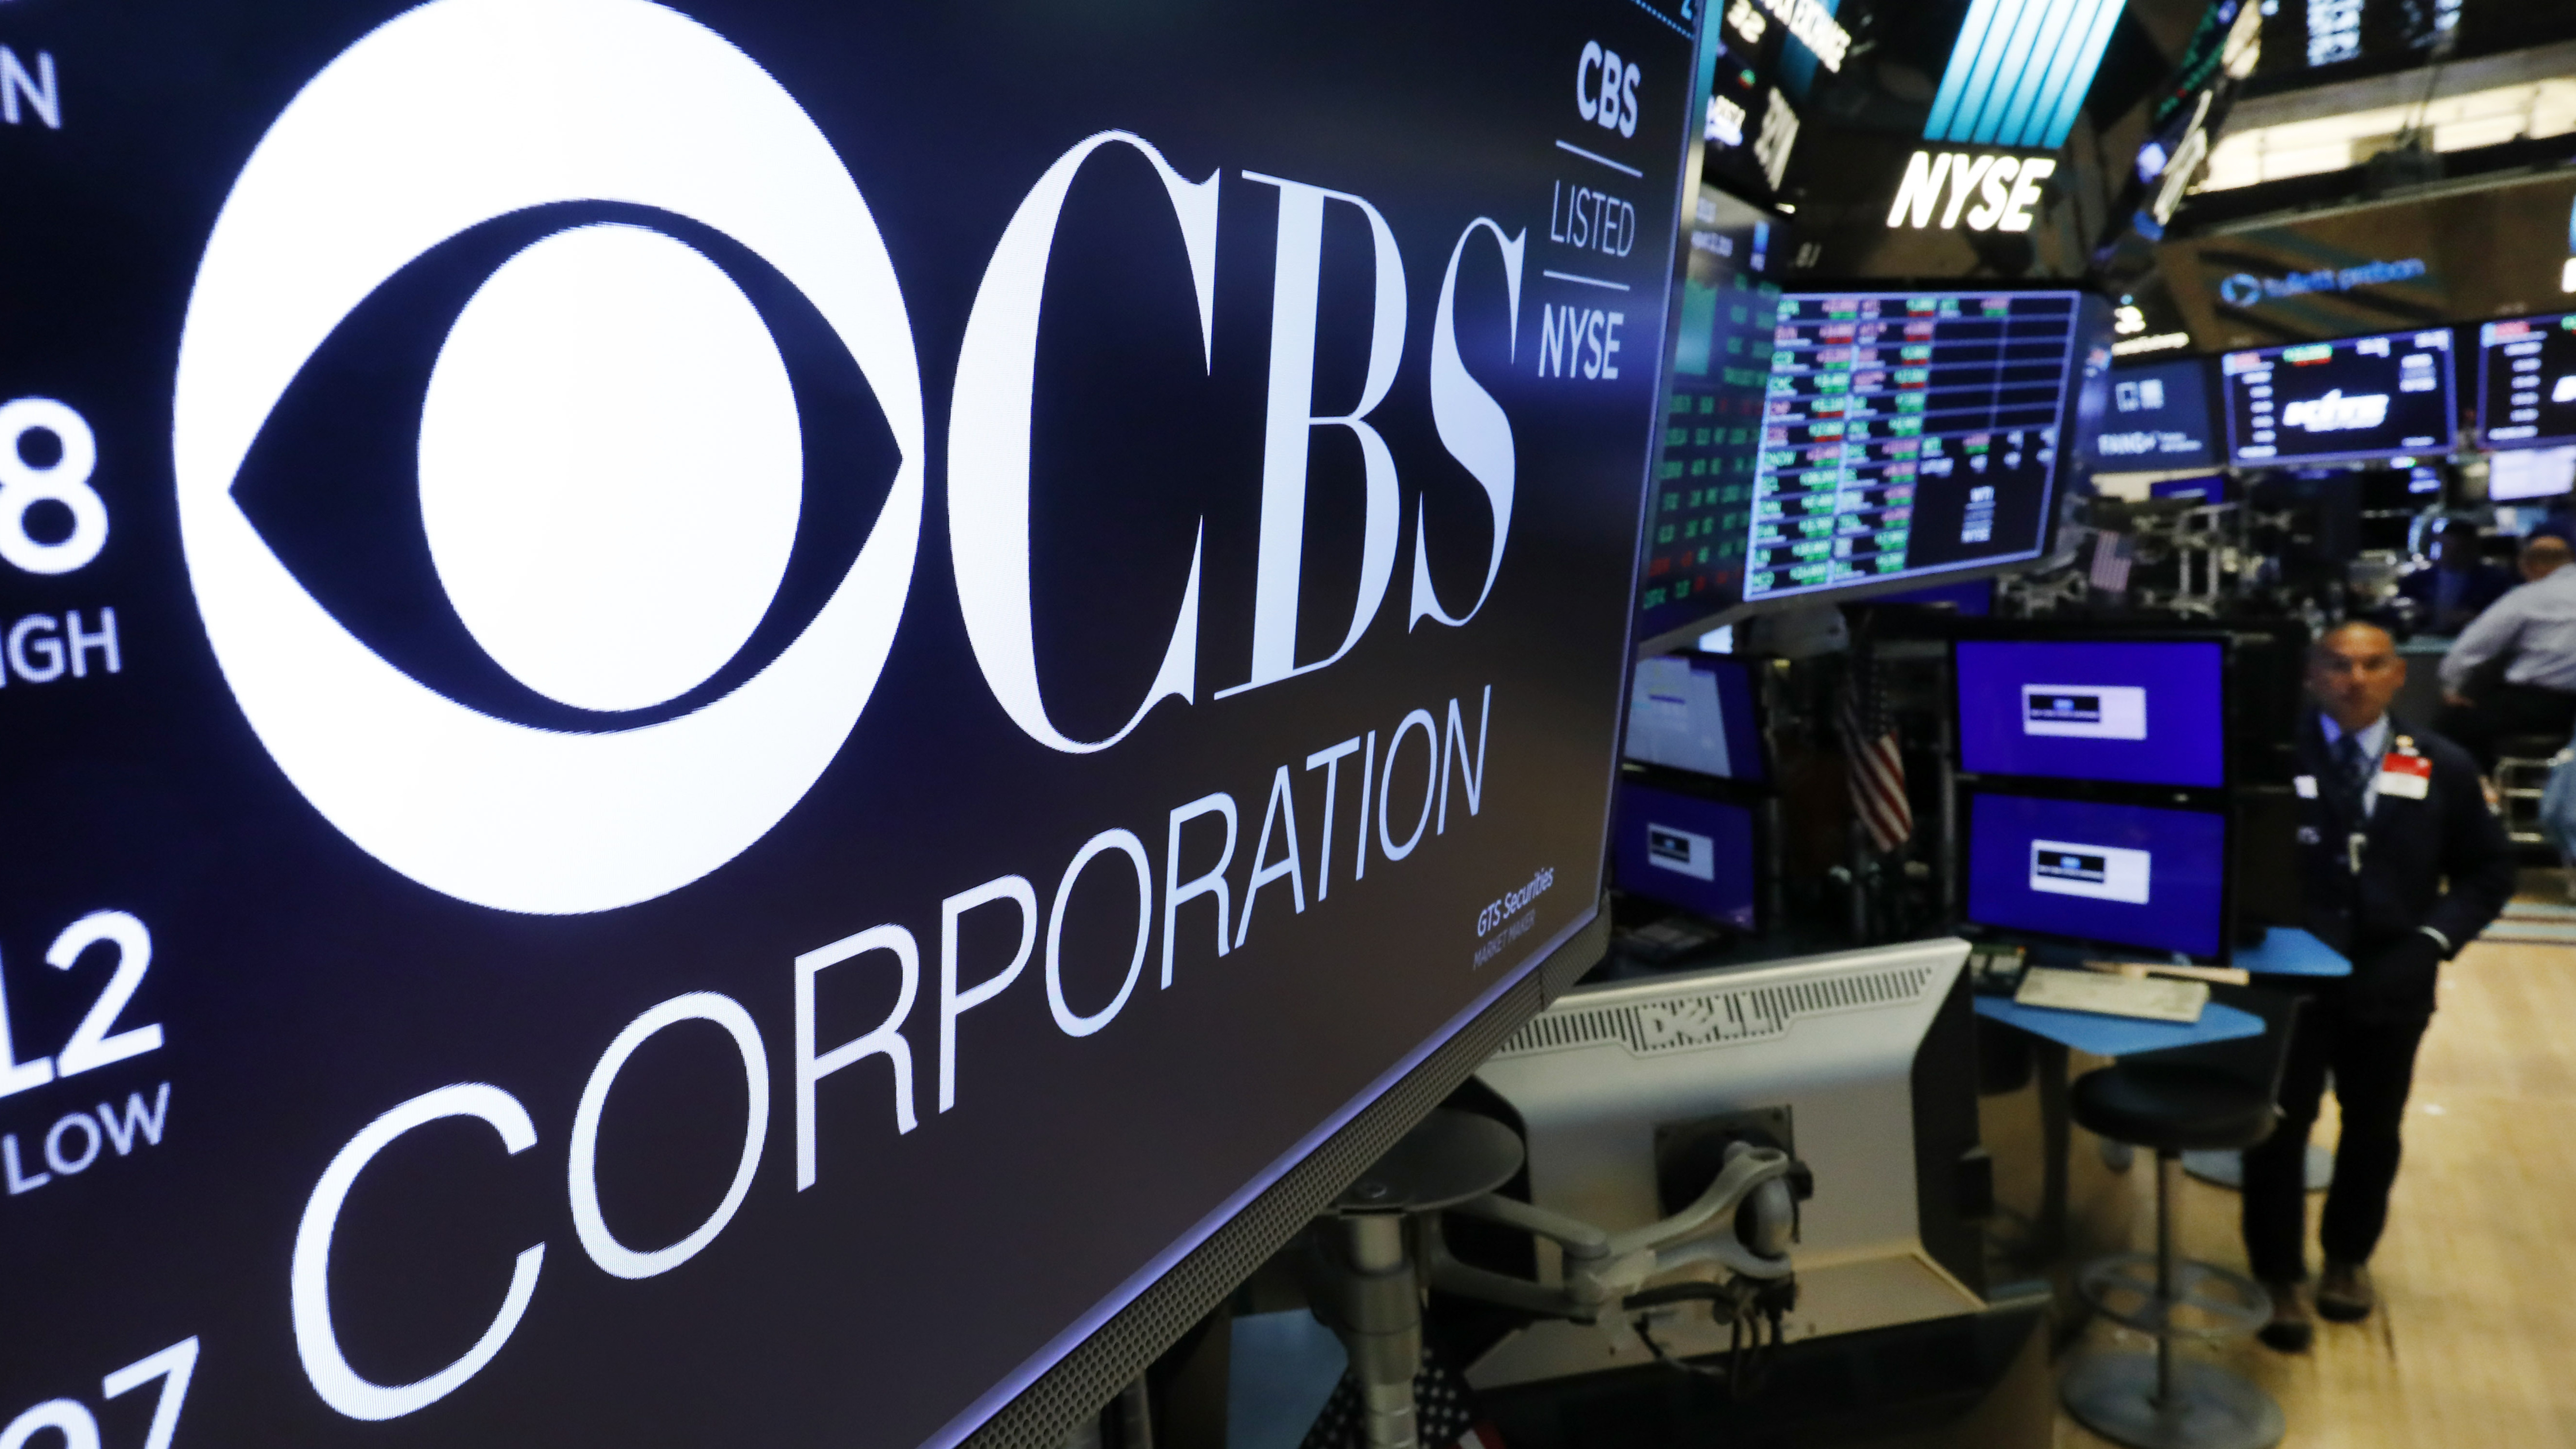 CBS and Viacom said Tuesday they will reunite, bringing together their networks and the Paramount movie studio as traditional media giants bulk up to challenge streaming companies like Netflix.